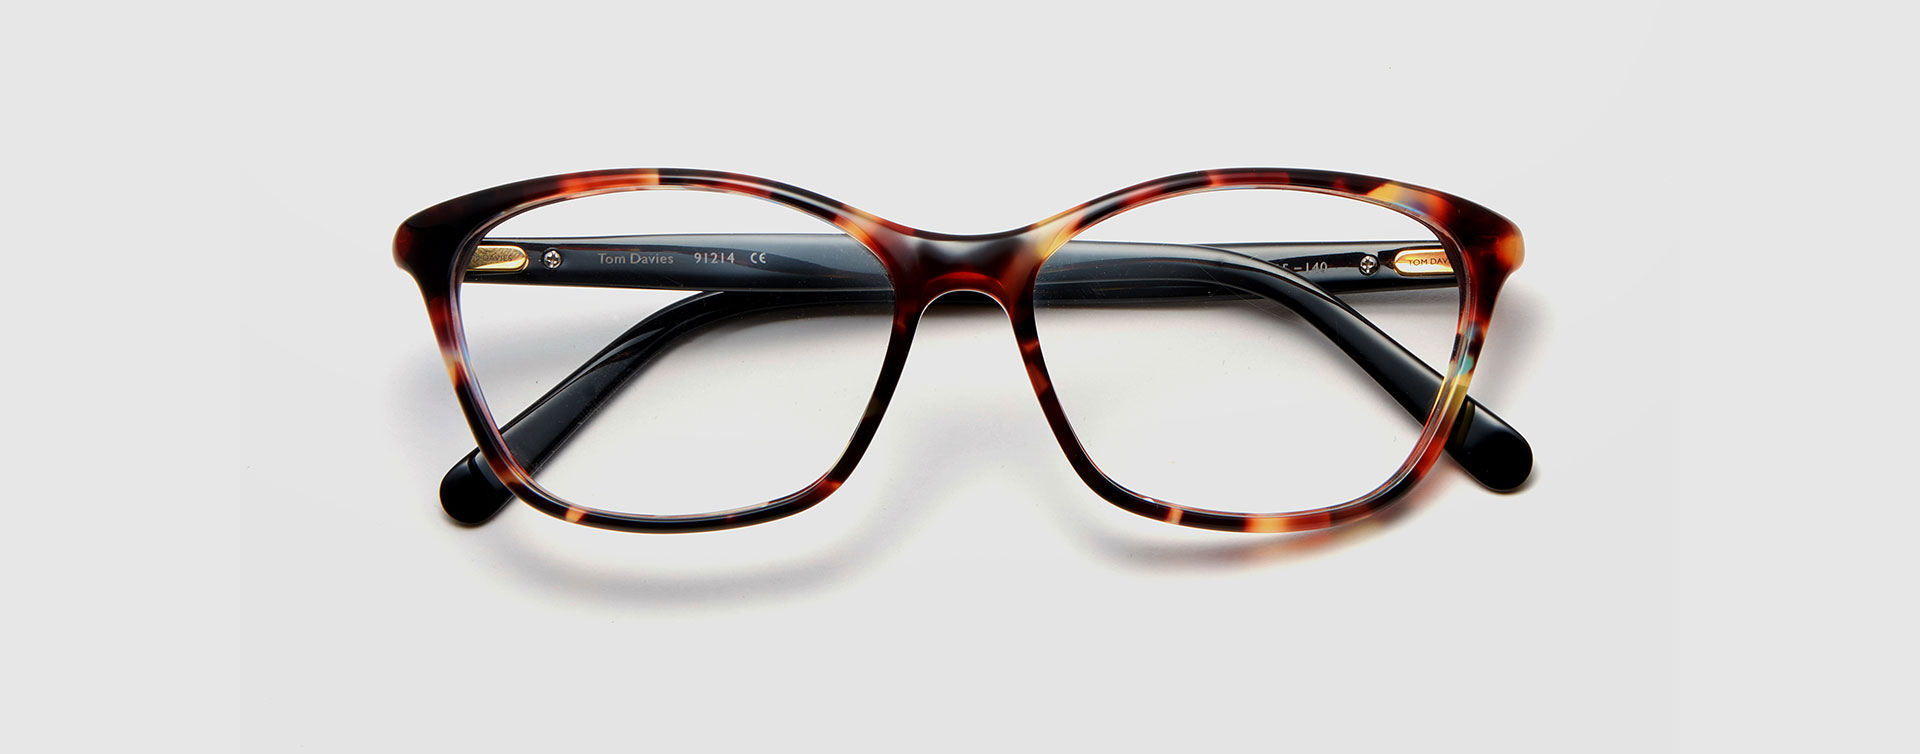 Limited edition acetate frame LE91214 by Tom Davies